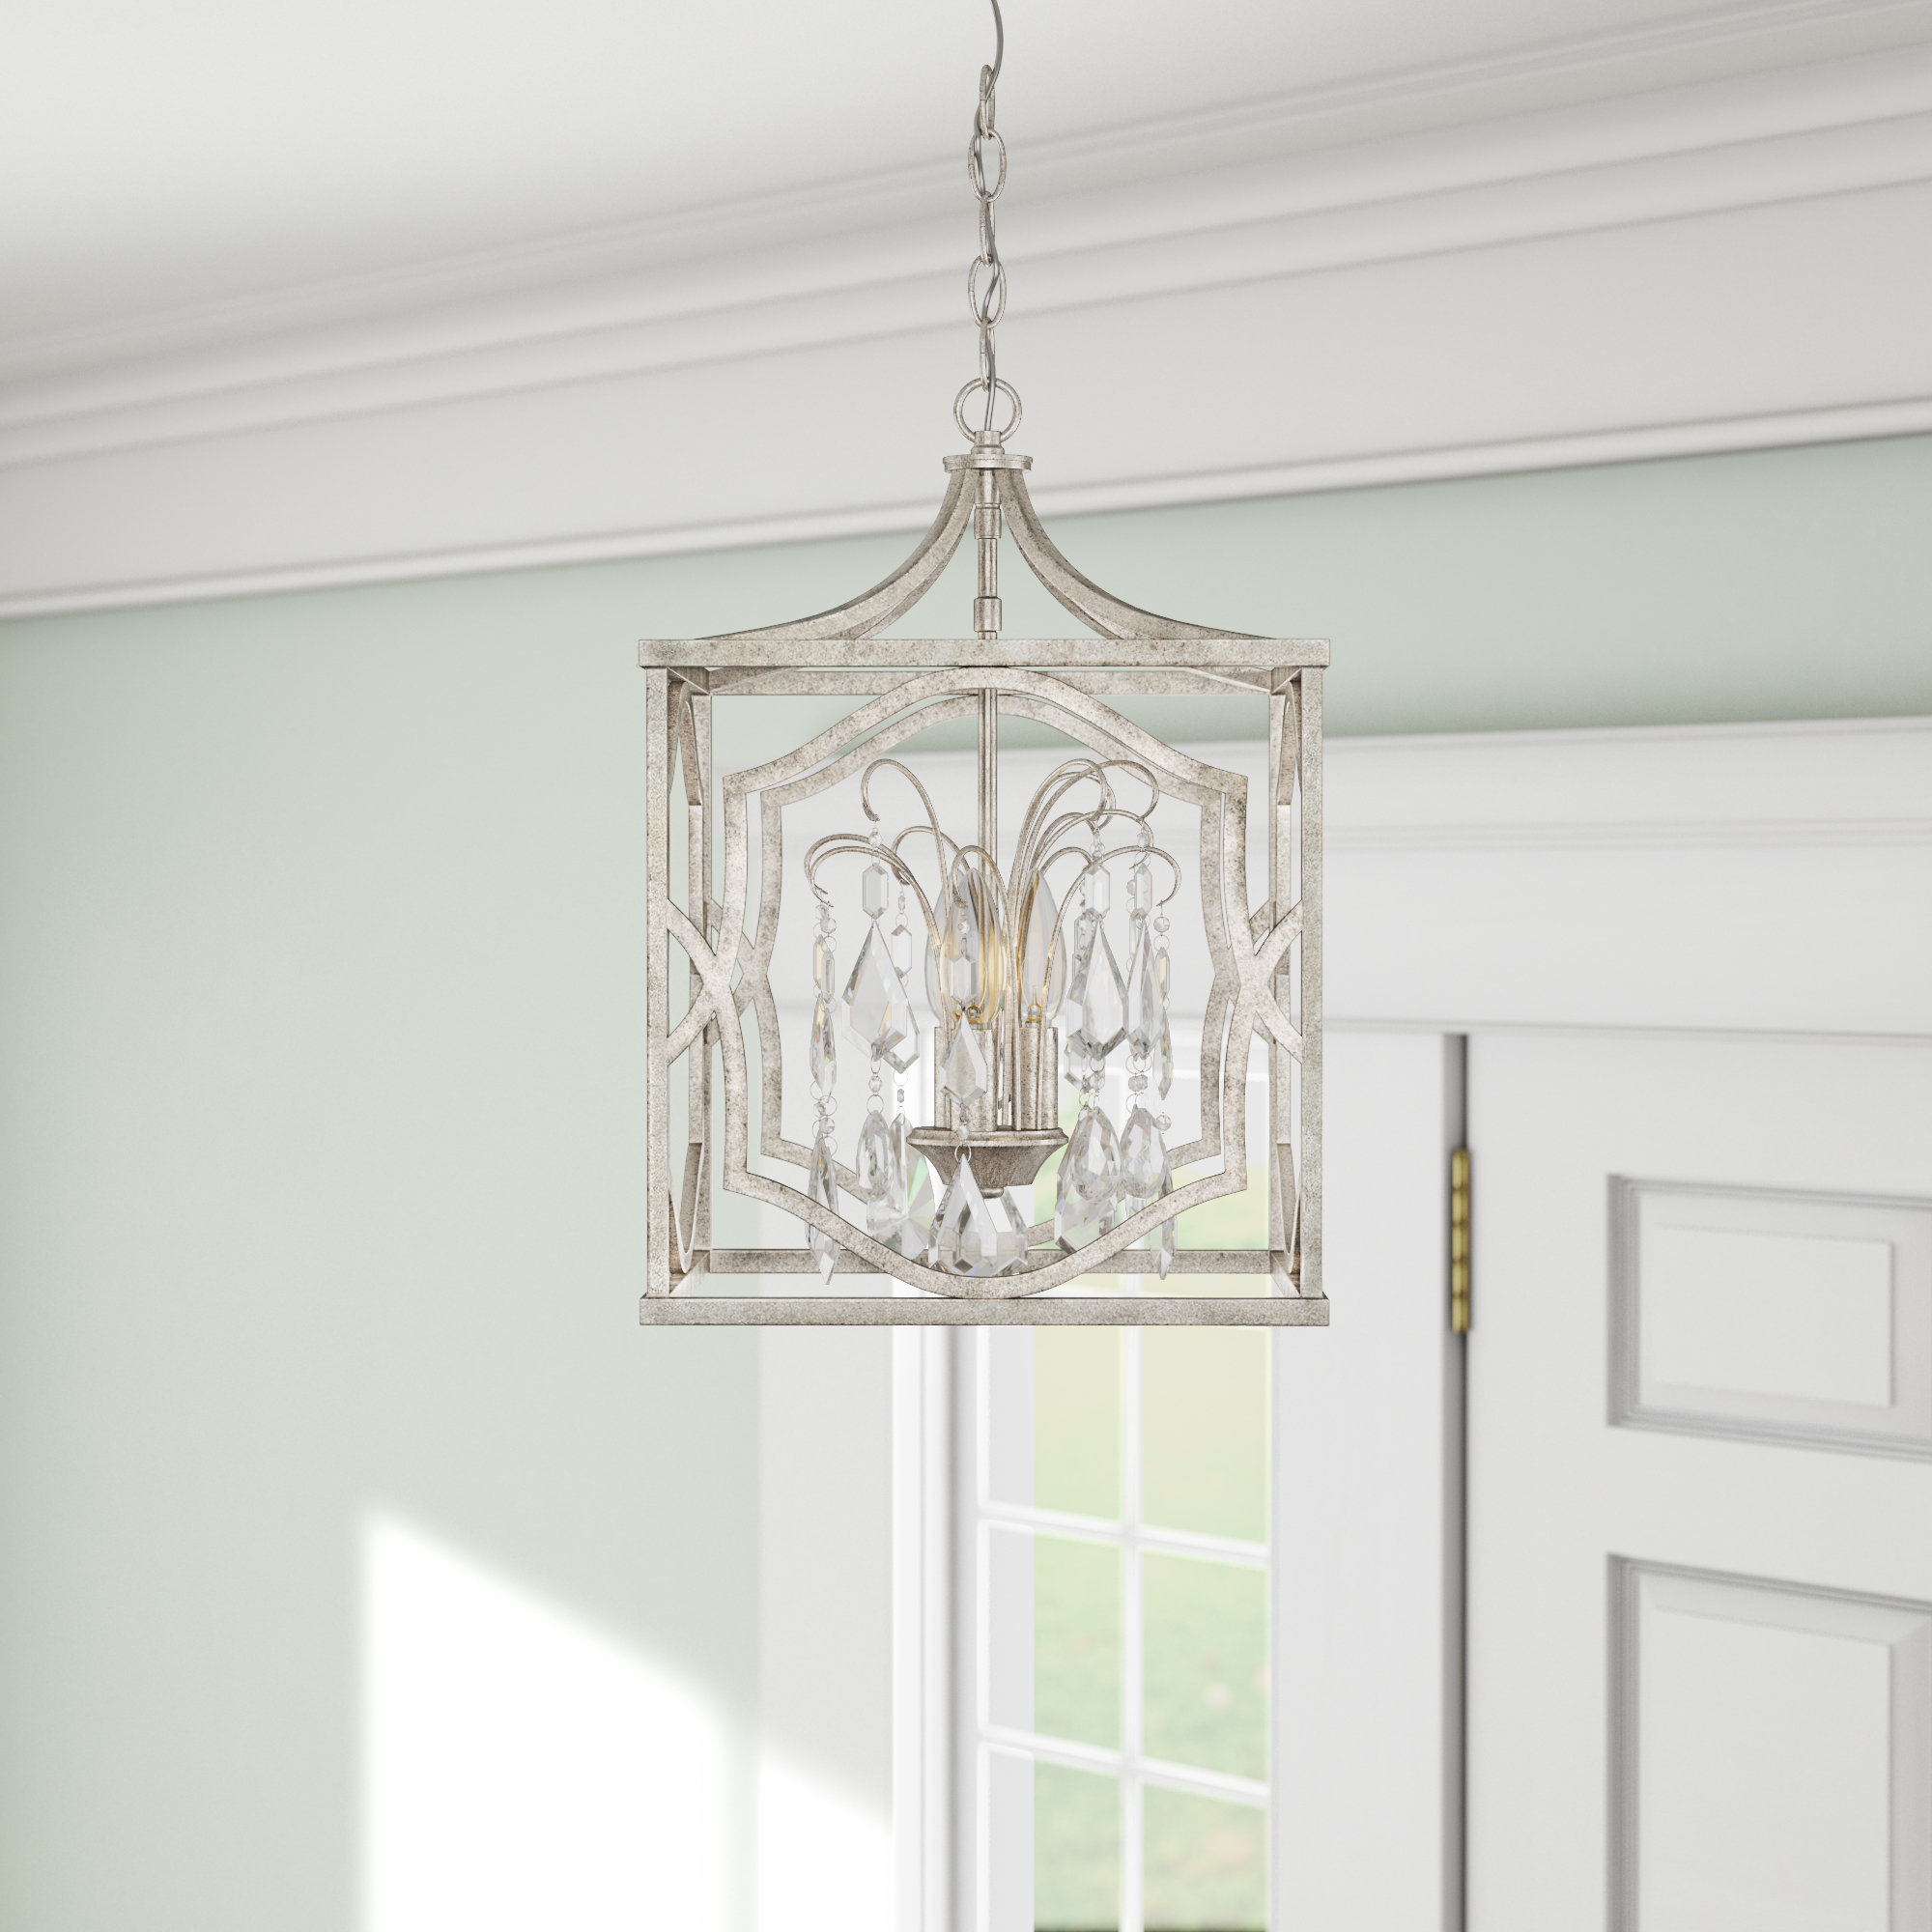 Destrey 3 Light Lantern Pendant Throughout Destrey 3 Light Lantern Square/rectangle Pendants (Gallery 6 of 30)